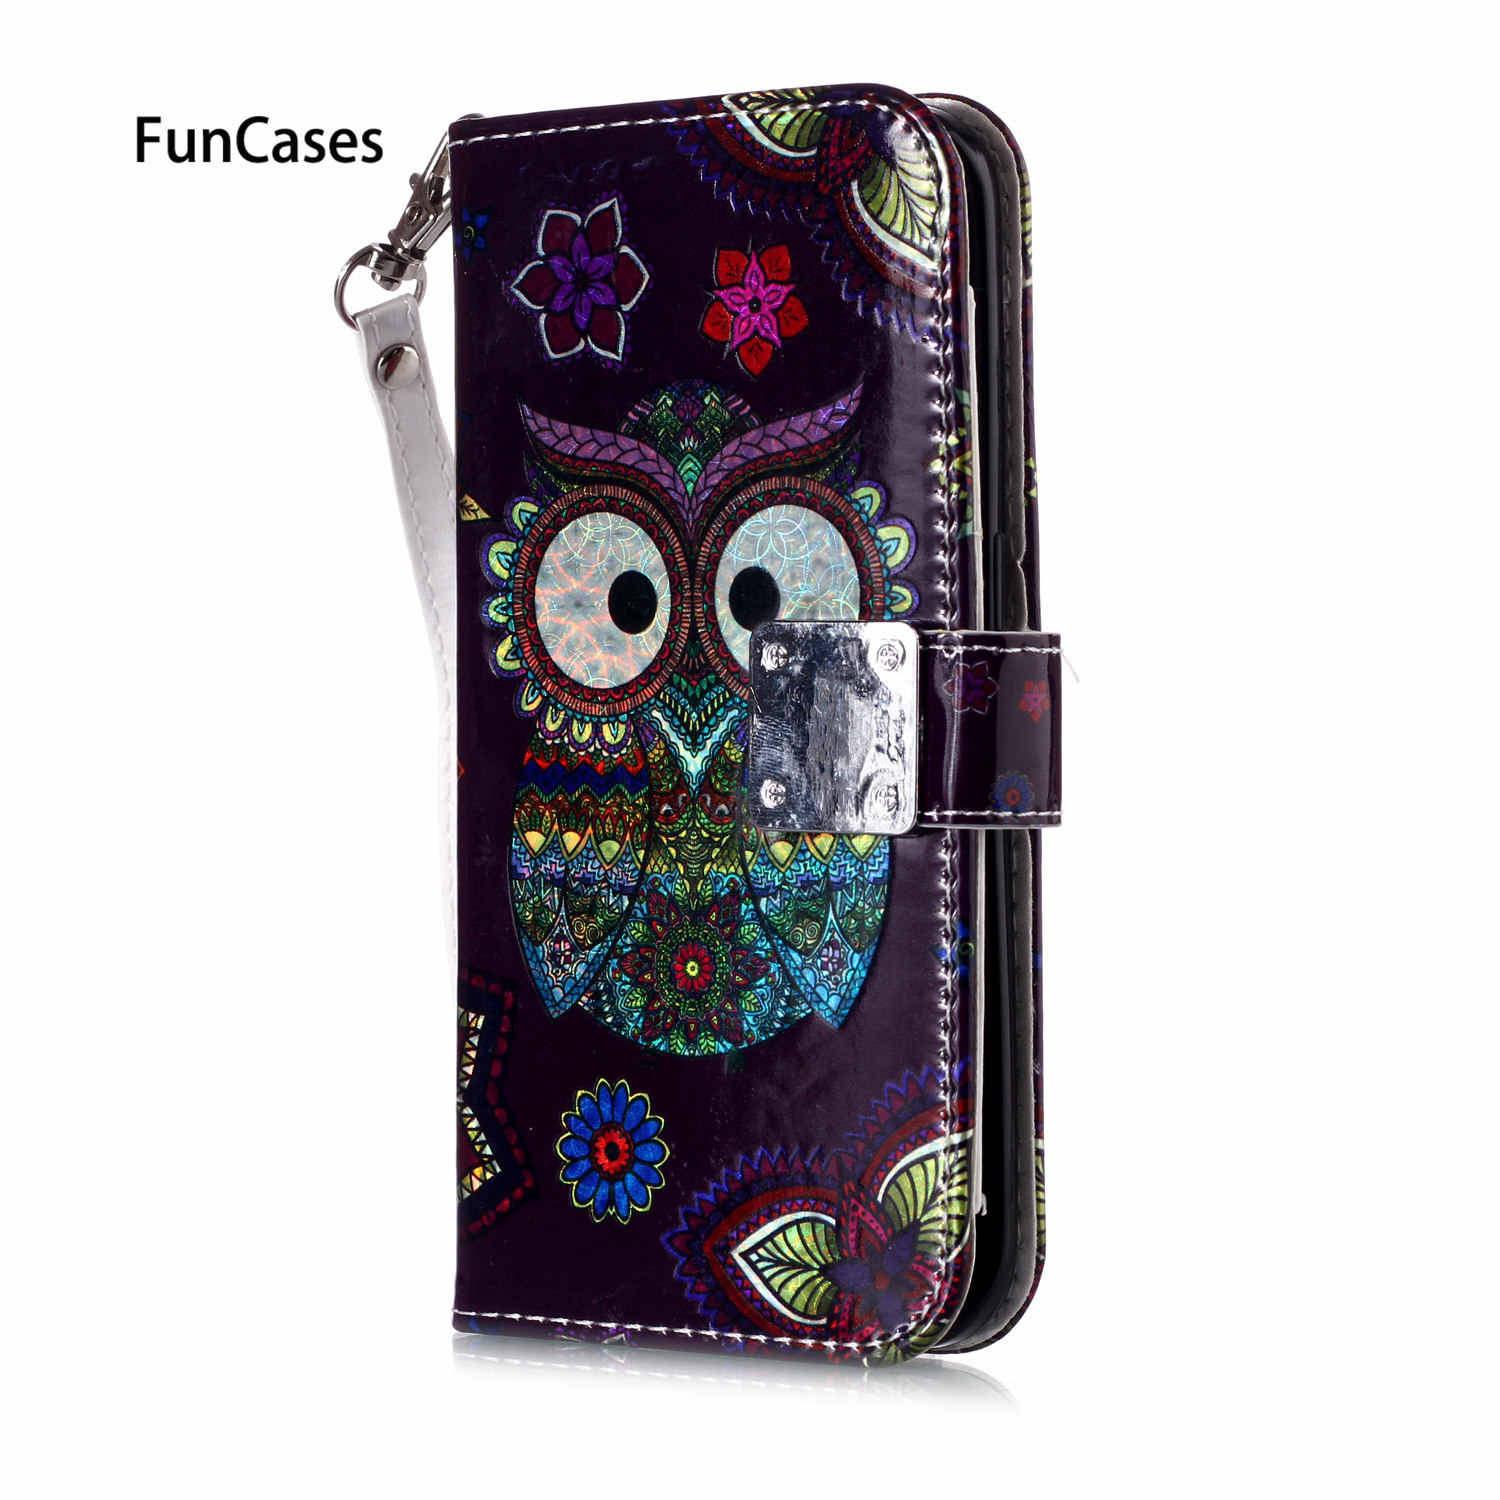 S6 Edge Rainbow Wallet Flip Case For phone case Samsung S6 Edge Protector Movil sFor Samsung Galaxy funda S6 Edge Bumper Cases